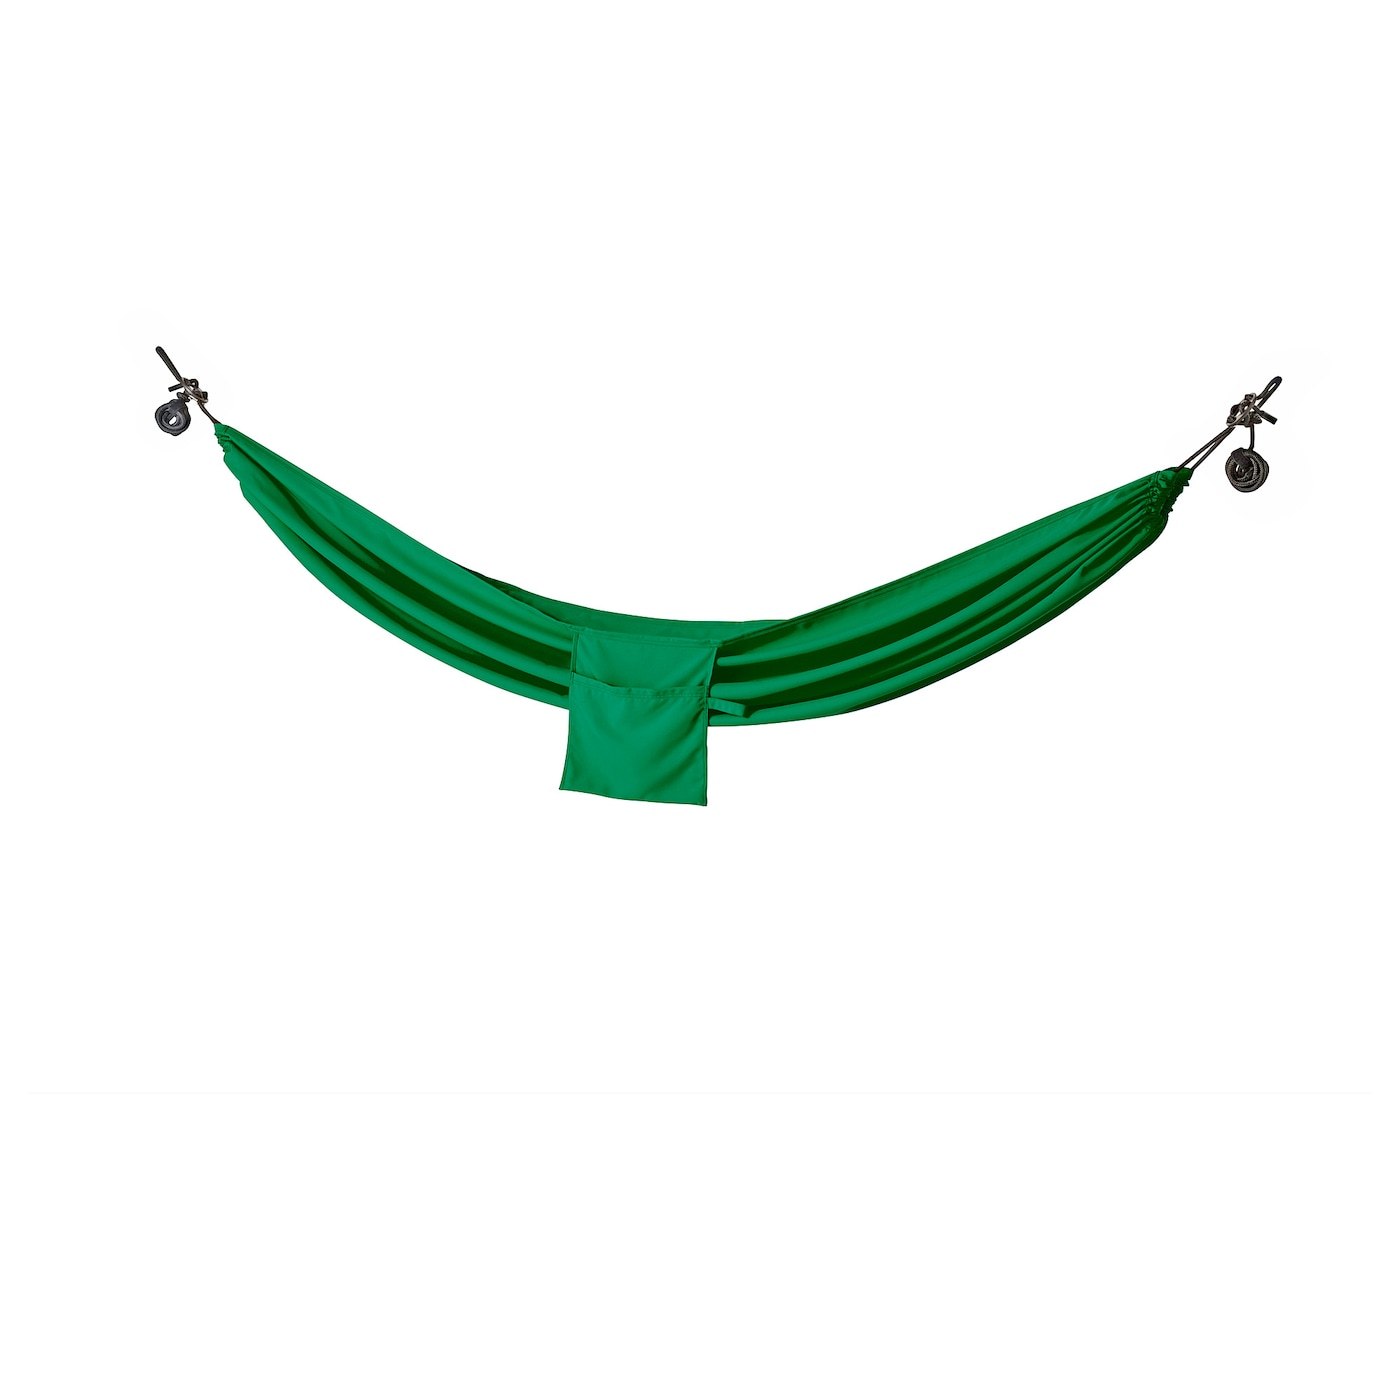 IKEA RISÖ hammock Easy to hang up with the included hooks, no need to tie knots.